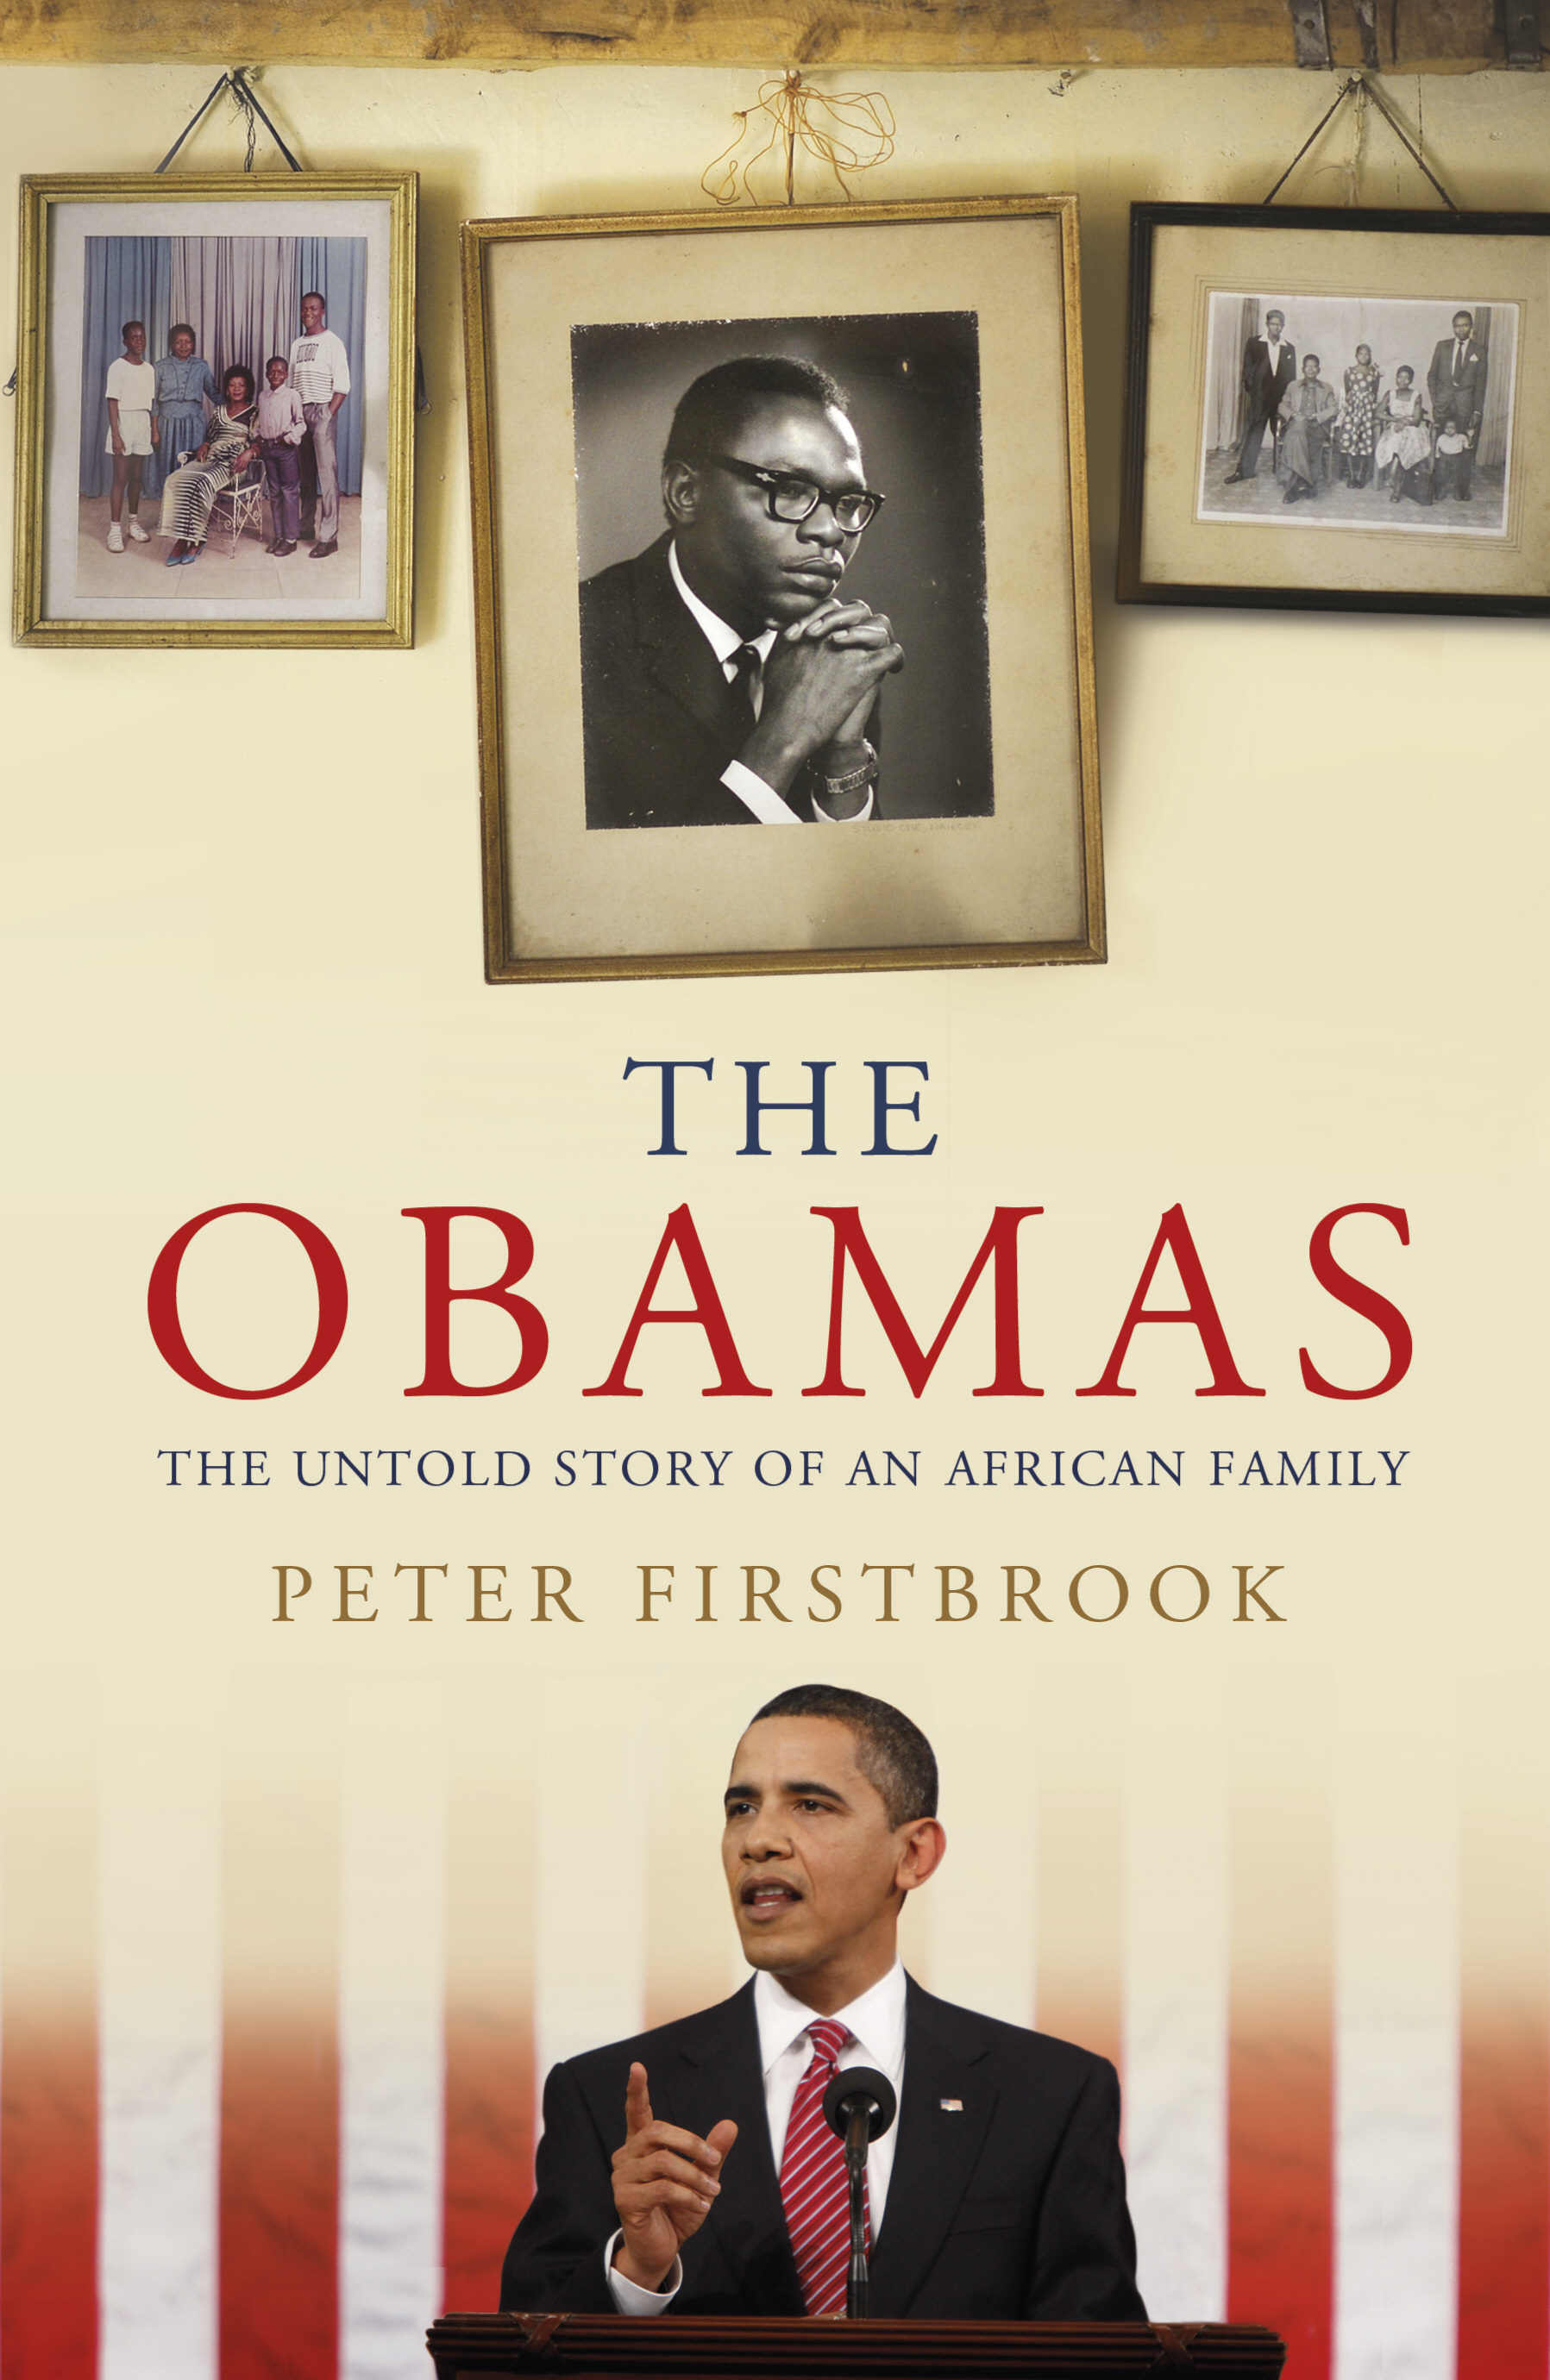 The Obamas The Untold Story of an African Family